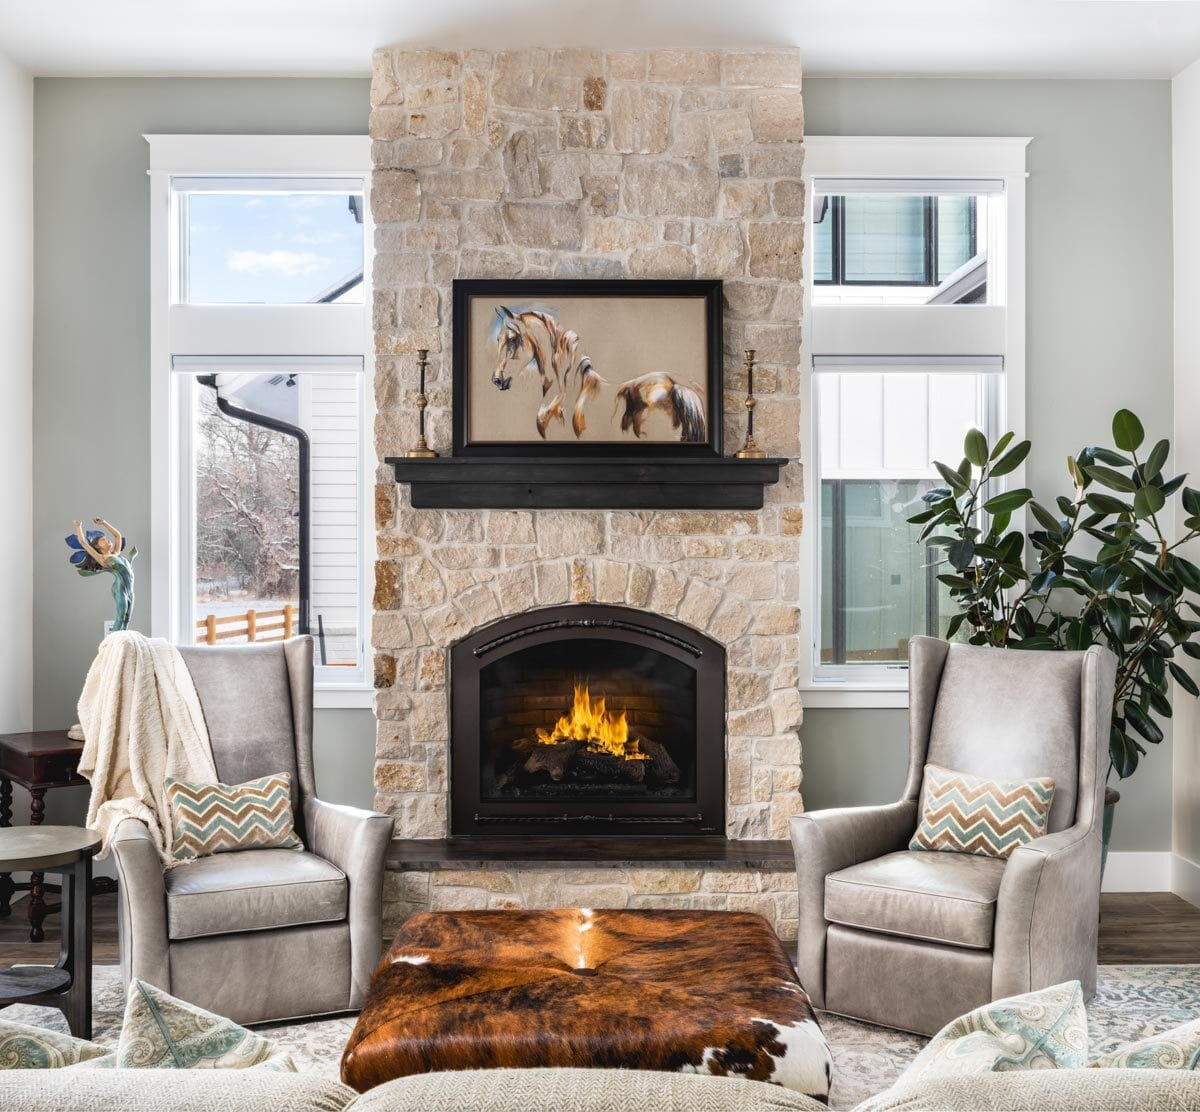 White framed windows flank the stone fireplace. A potted plant on the side emits a refreshing ambiance.